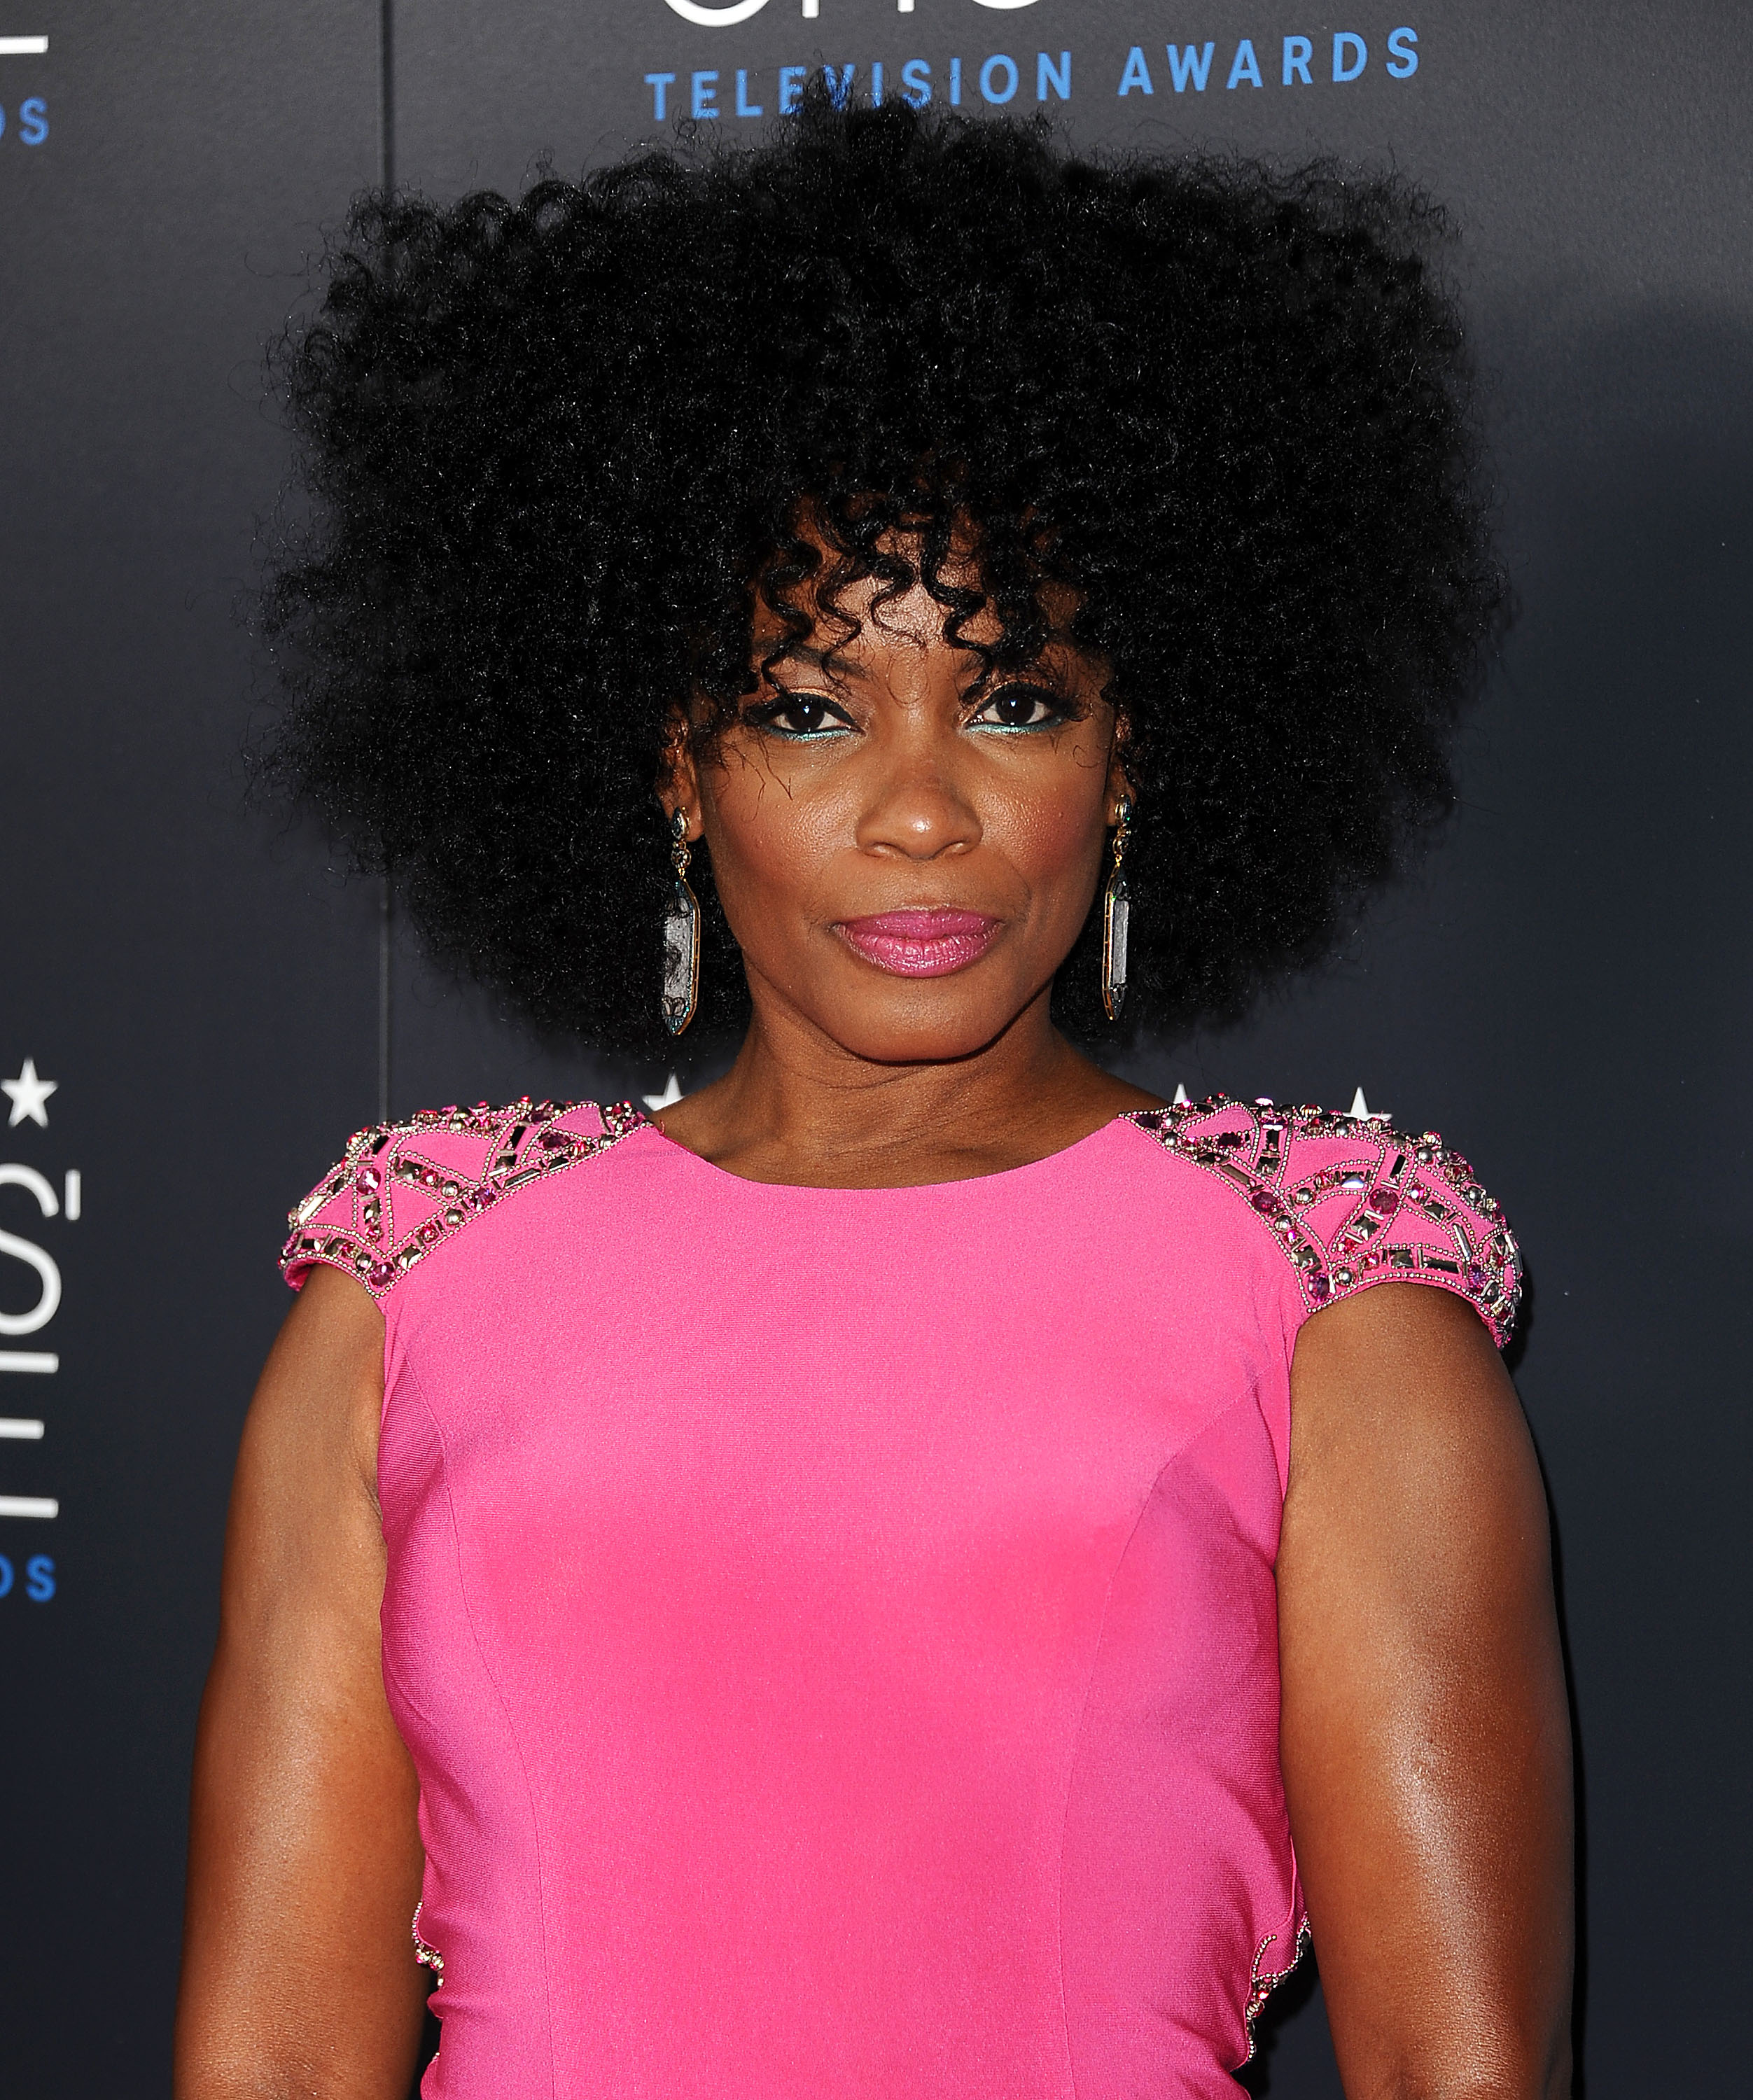 Aunjanue Ellis attends the 5th annual Critics' Choice Television Awards at the Beverly Hilton Hotel on May 31, 2015 in Beverly Hills, California.